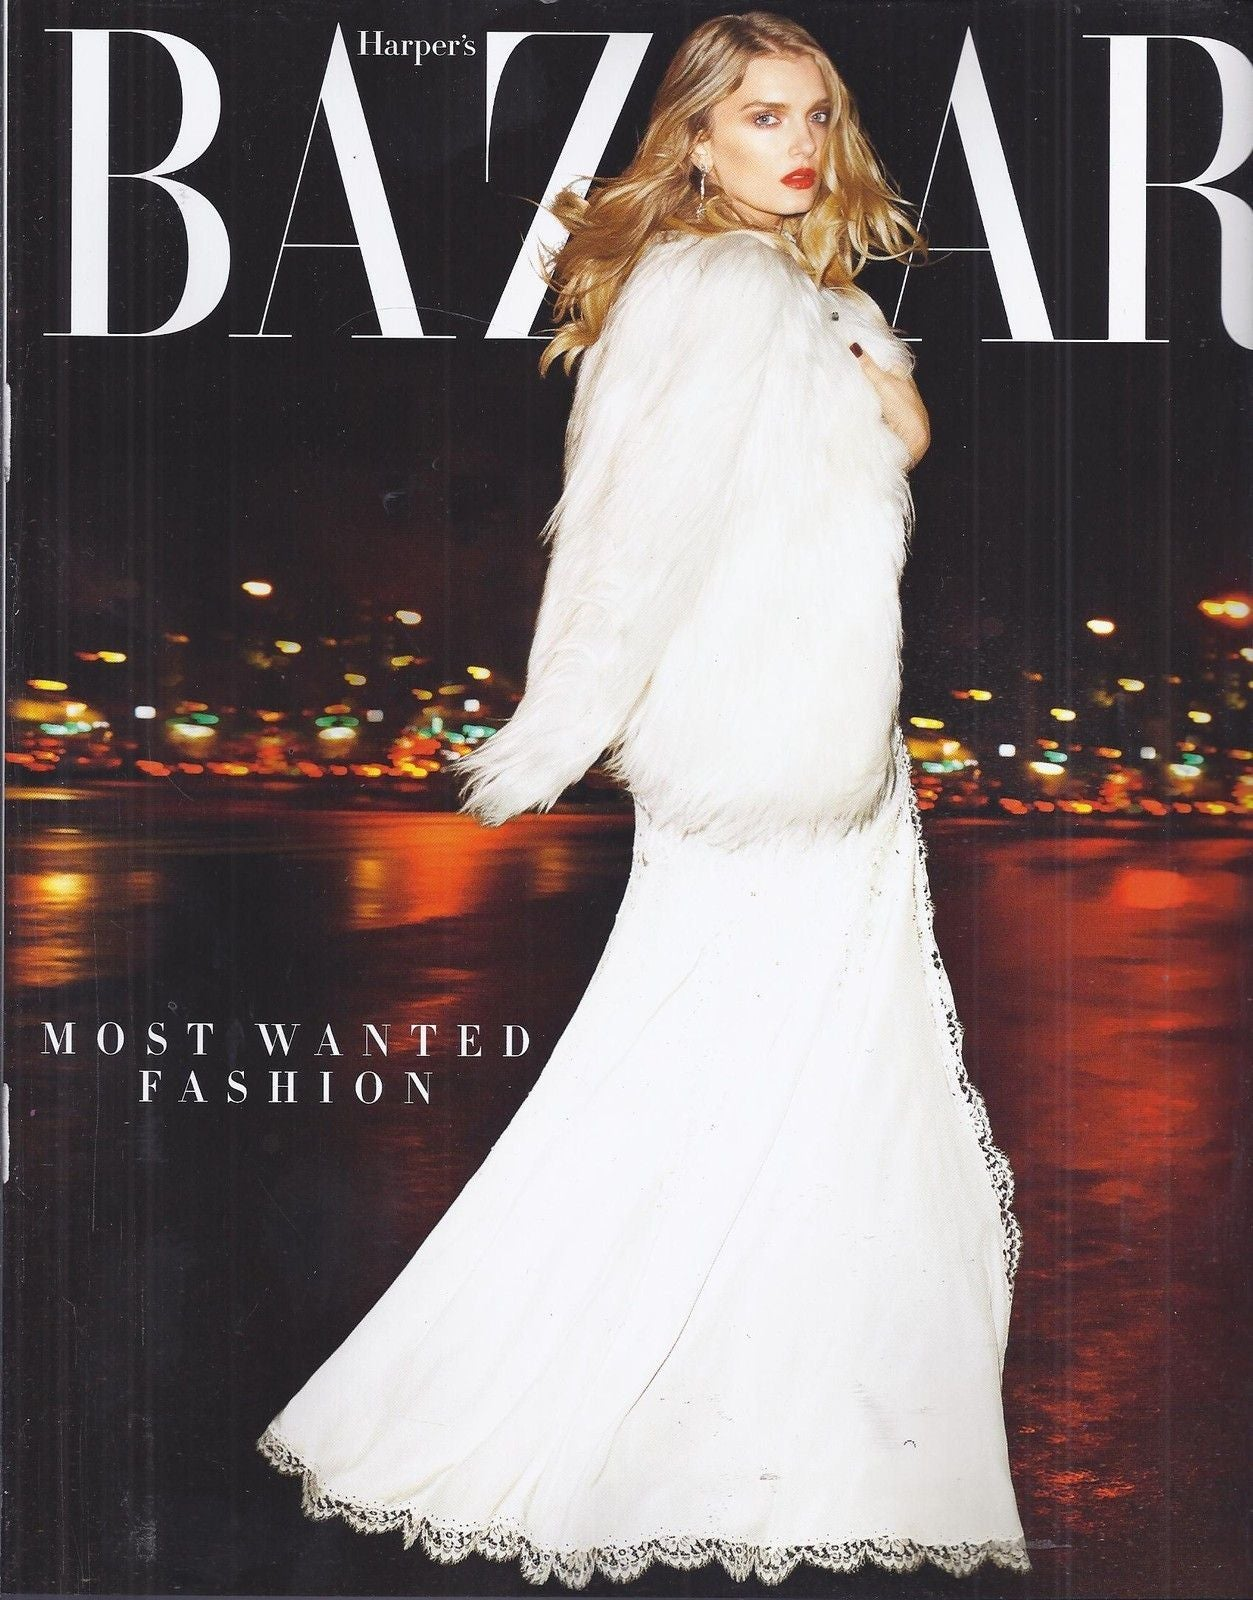 harpers-bazaar-december-2012-pologeorgis-white-goat-jacket-on-lily-donaldson-styled-by-julia-von-boehm